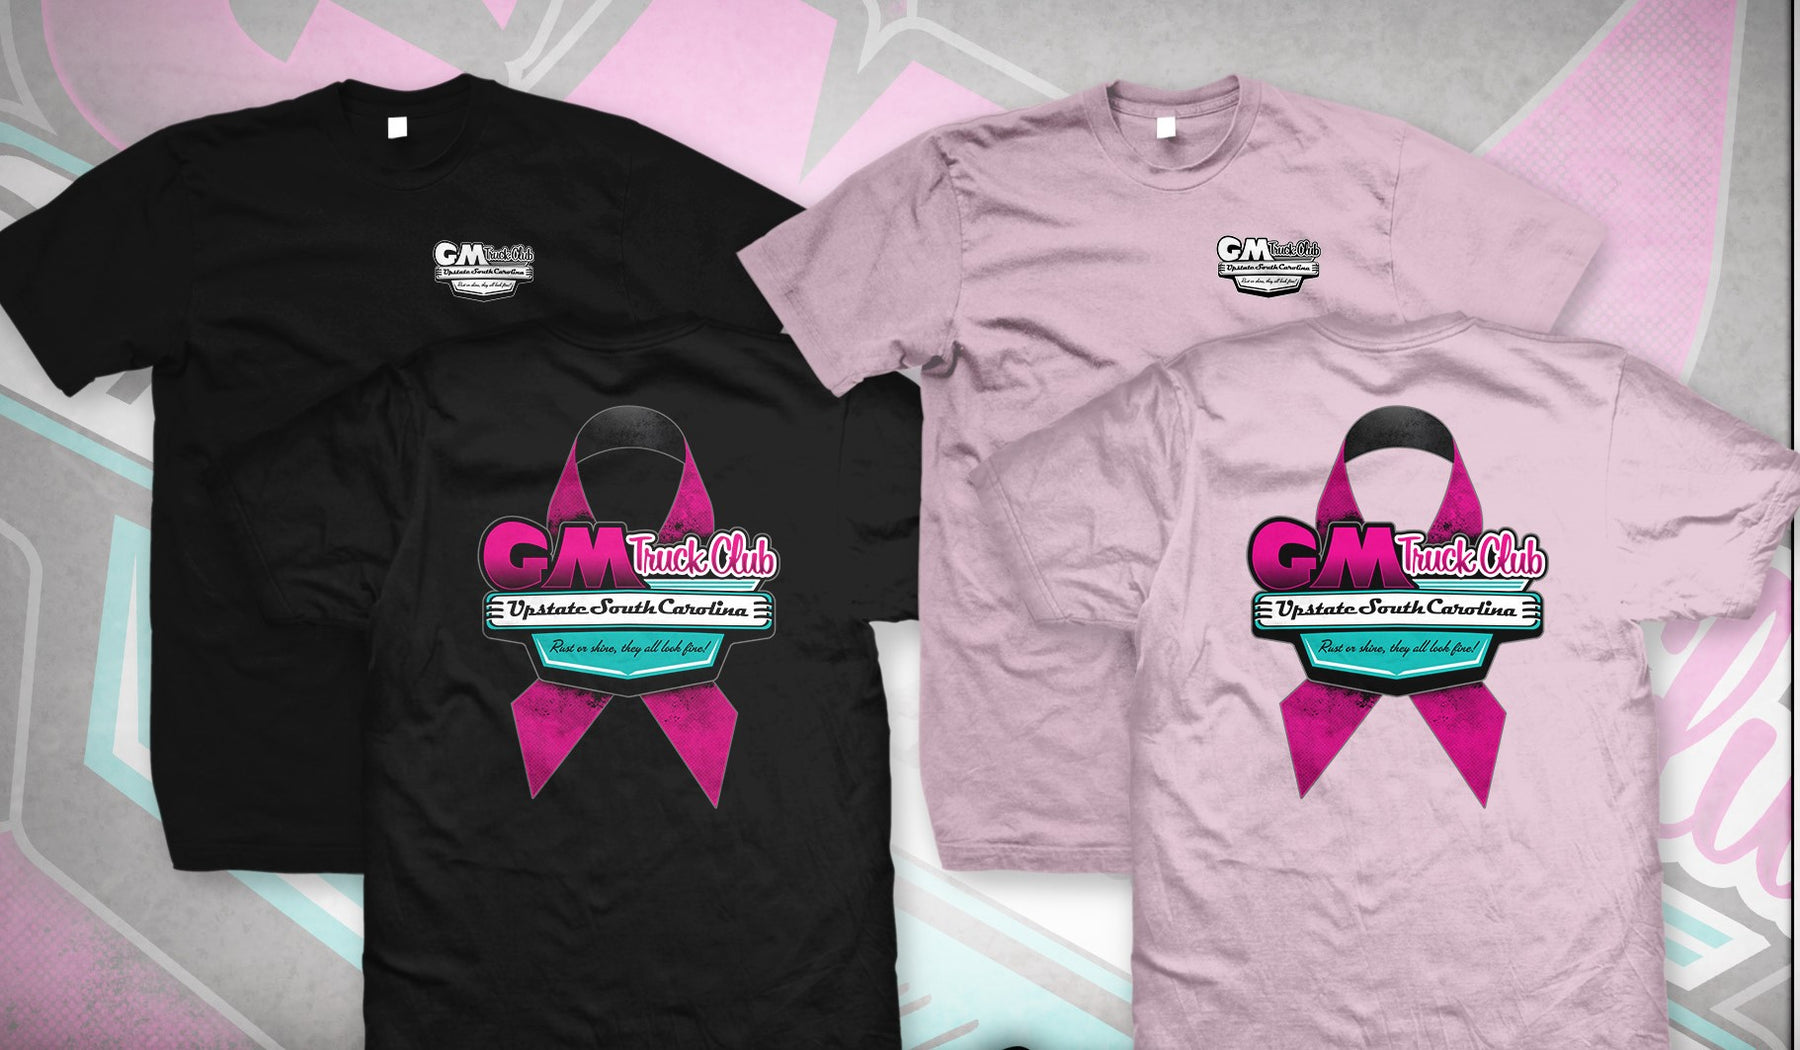 Upstate SC GM Truck Club Breast Cancer Awareness T-Shirt